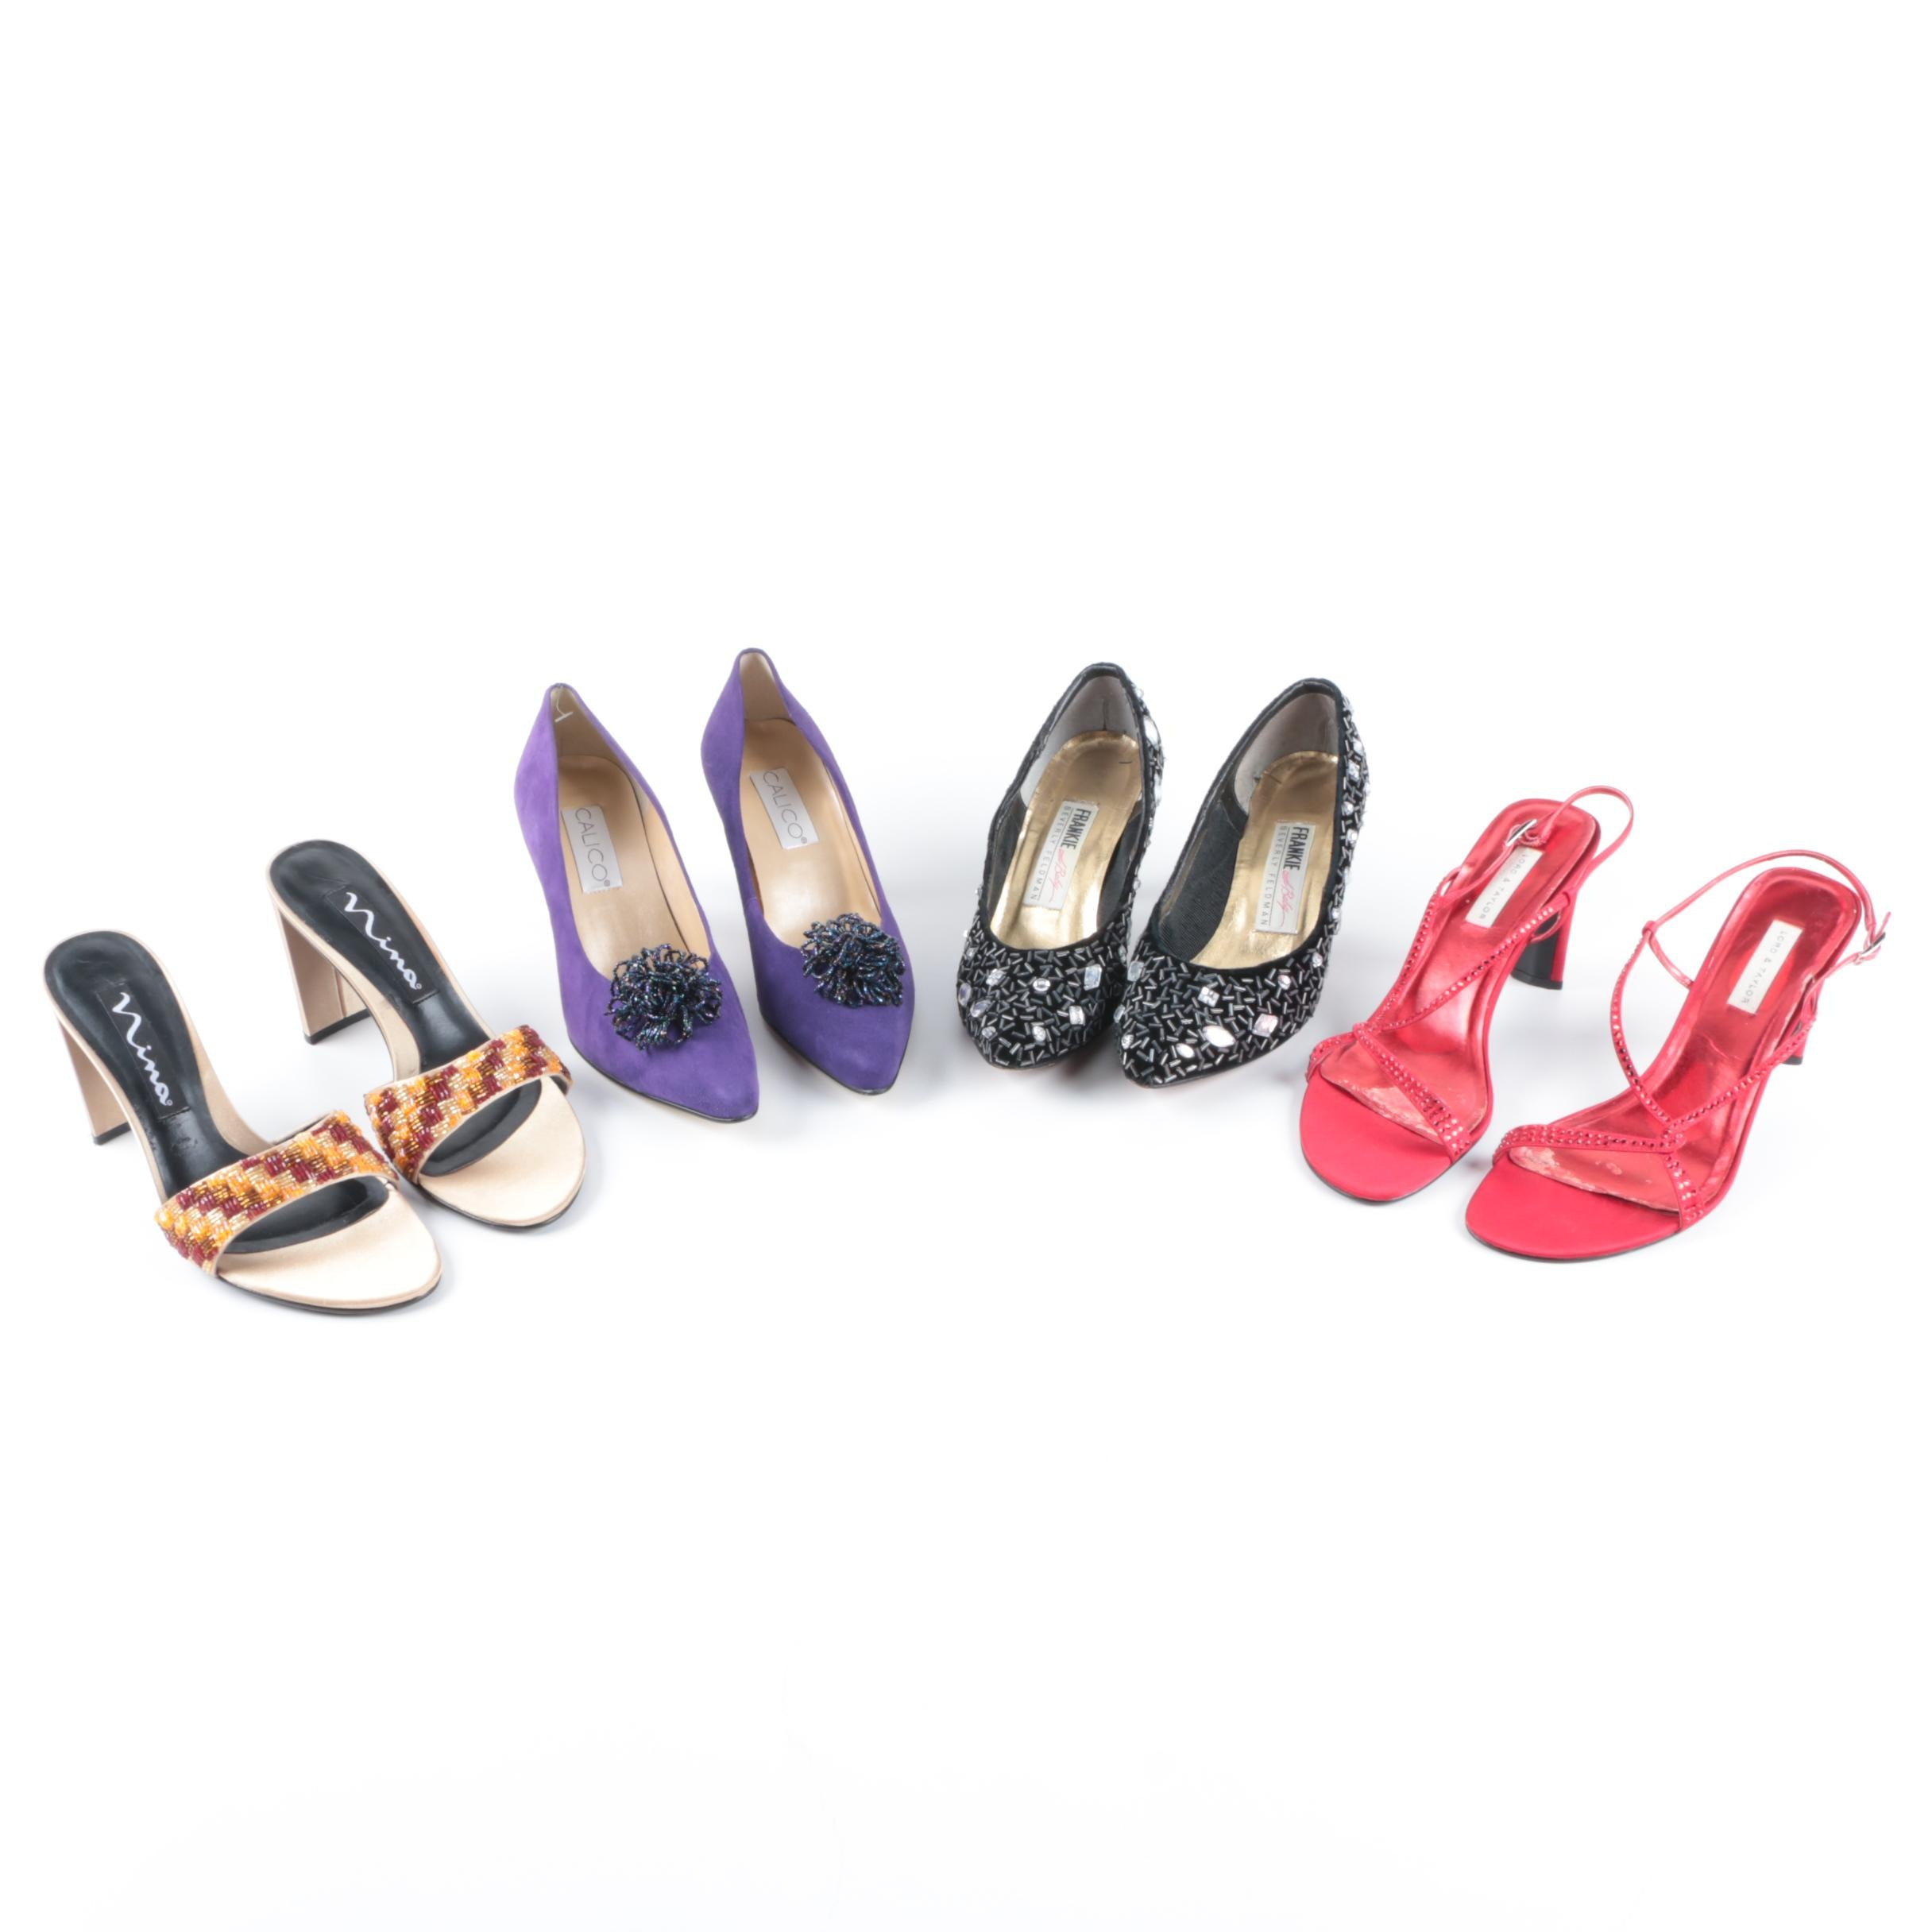 Women's Beaded and Rhinestone Heels Including Lord & Taylor and Beverly Feldman